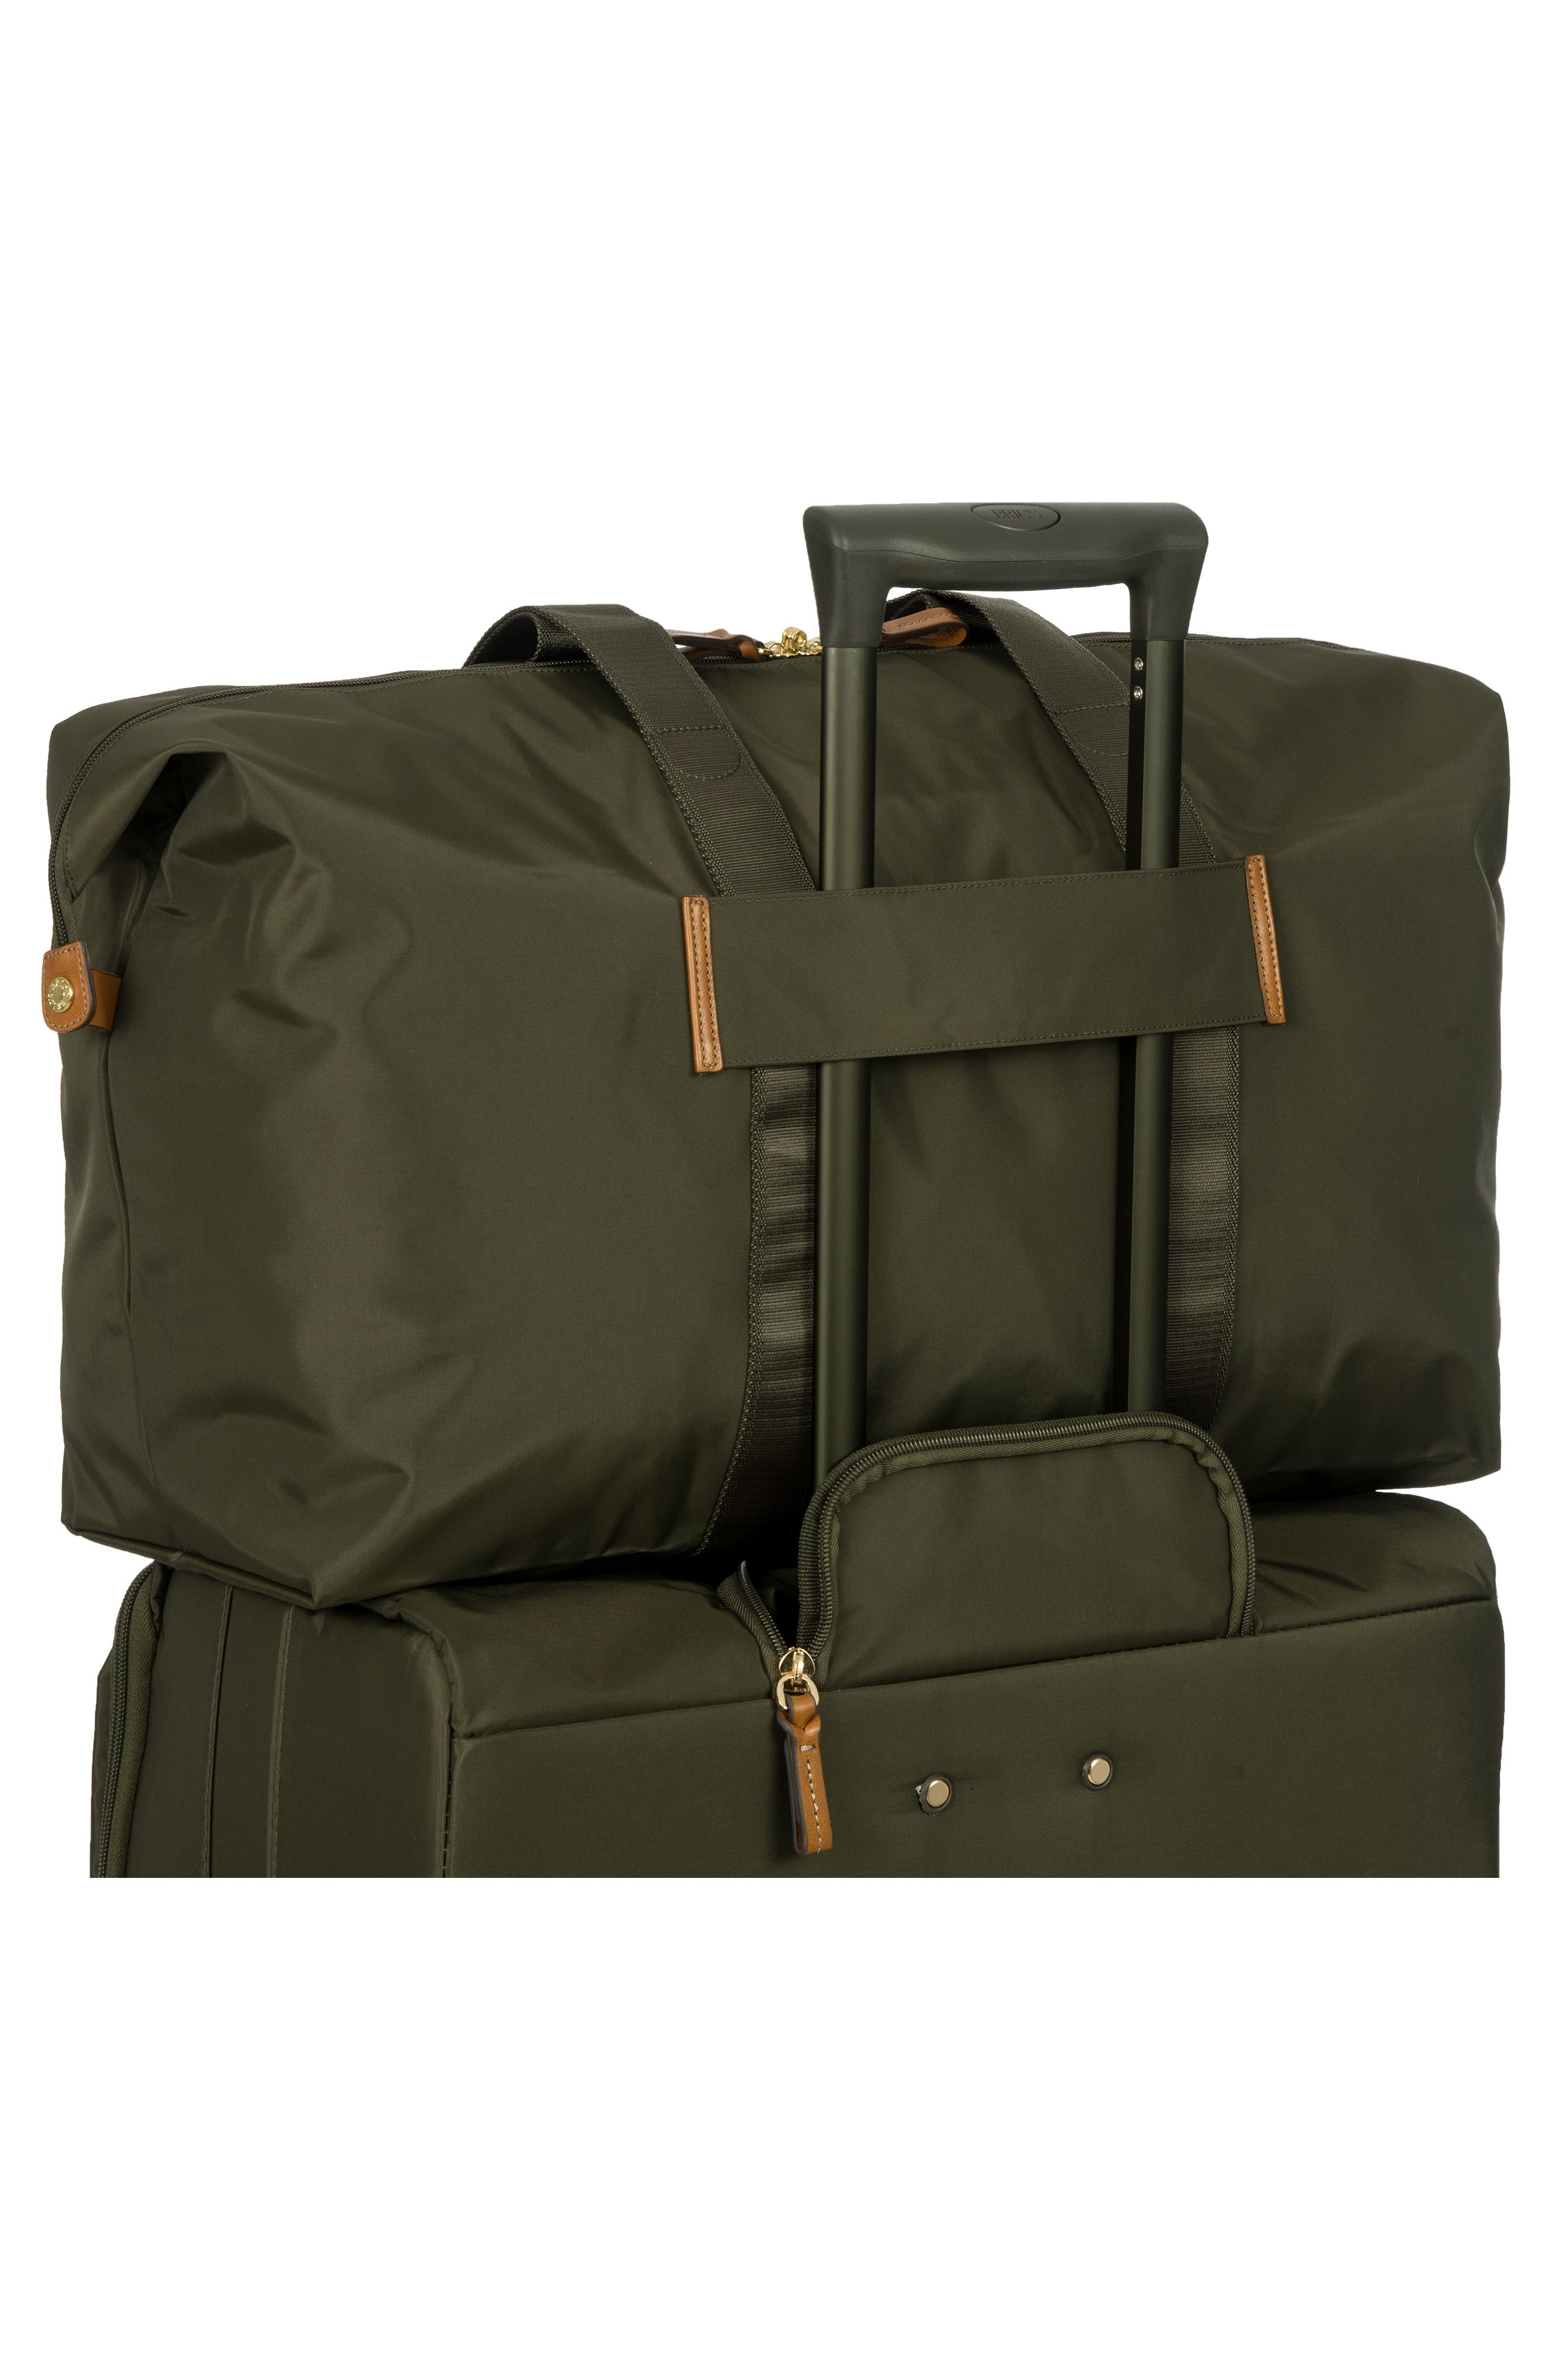 X-Bag 22-Inch Folding Duffel Bag,                             Alternate thumbnail 2, color,                             Olive